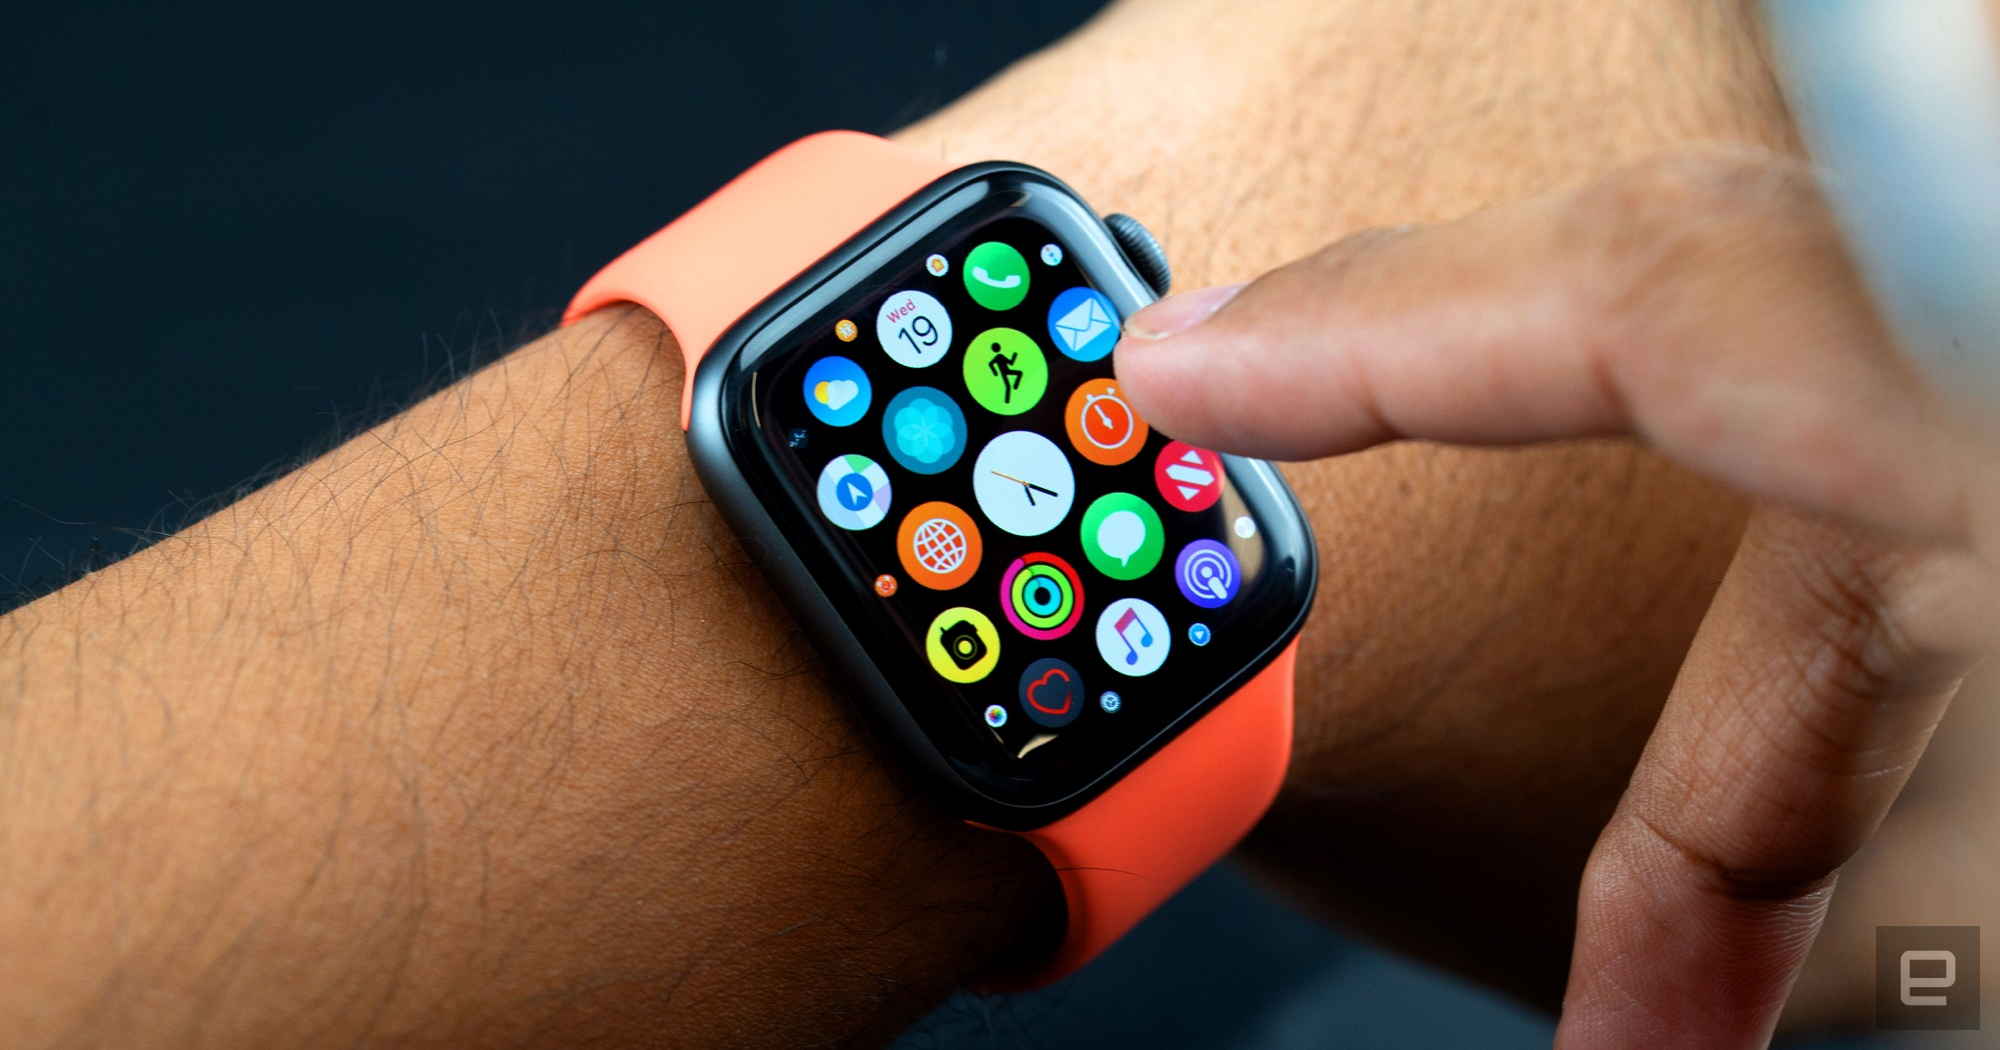 Apple Watch Series 4 review: Small tweaks make a big impact